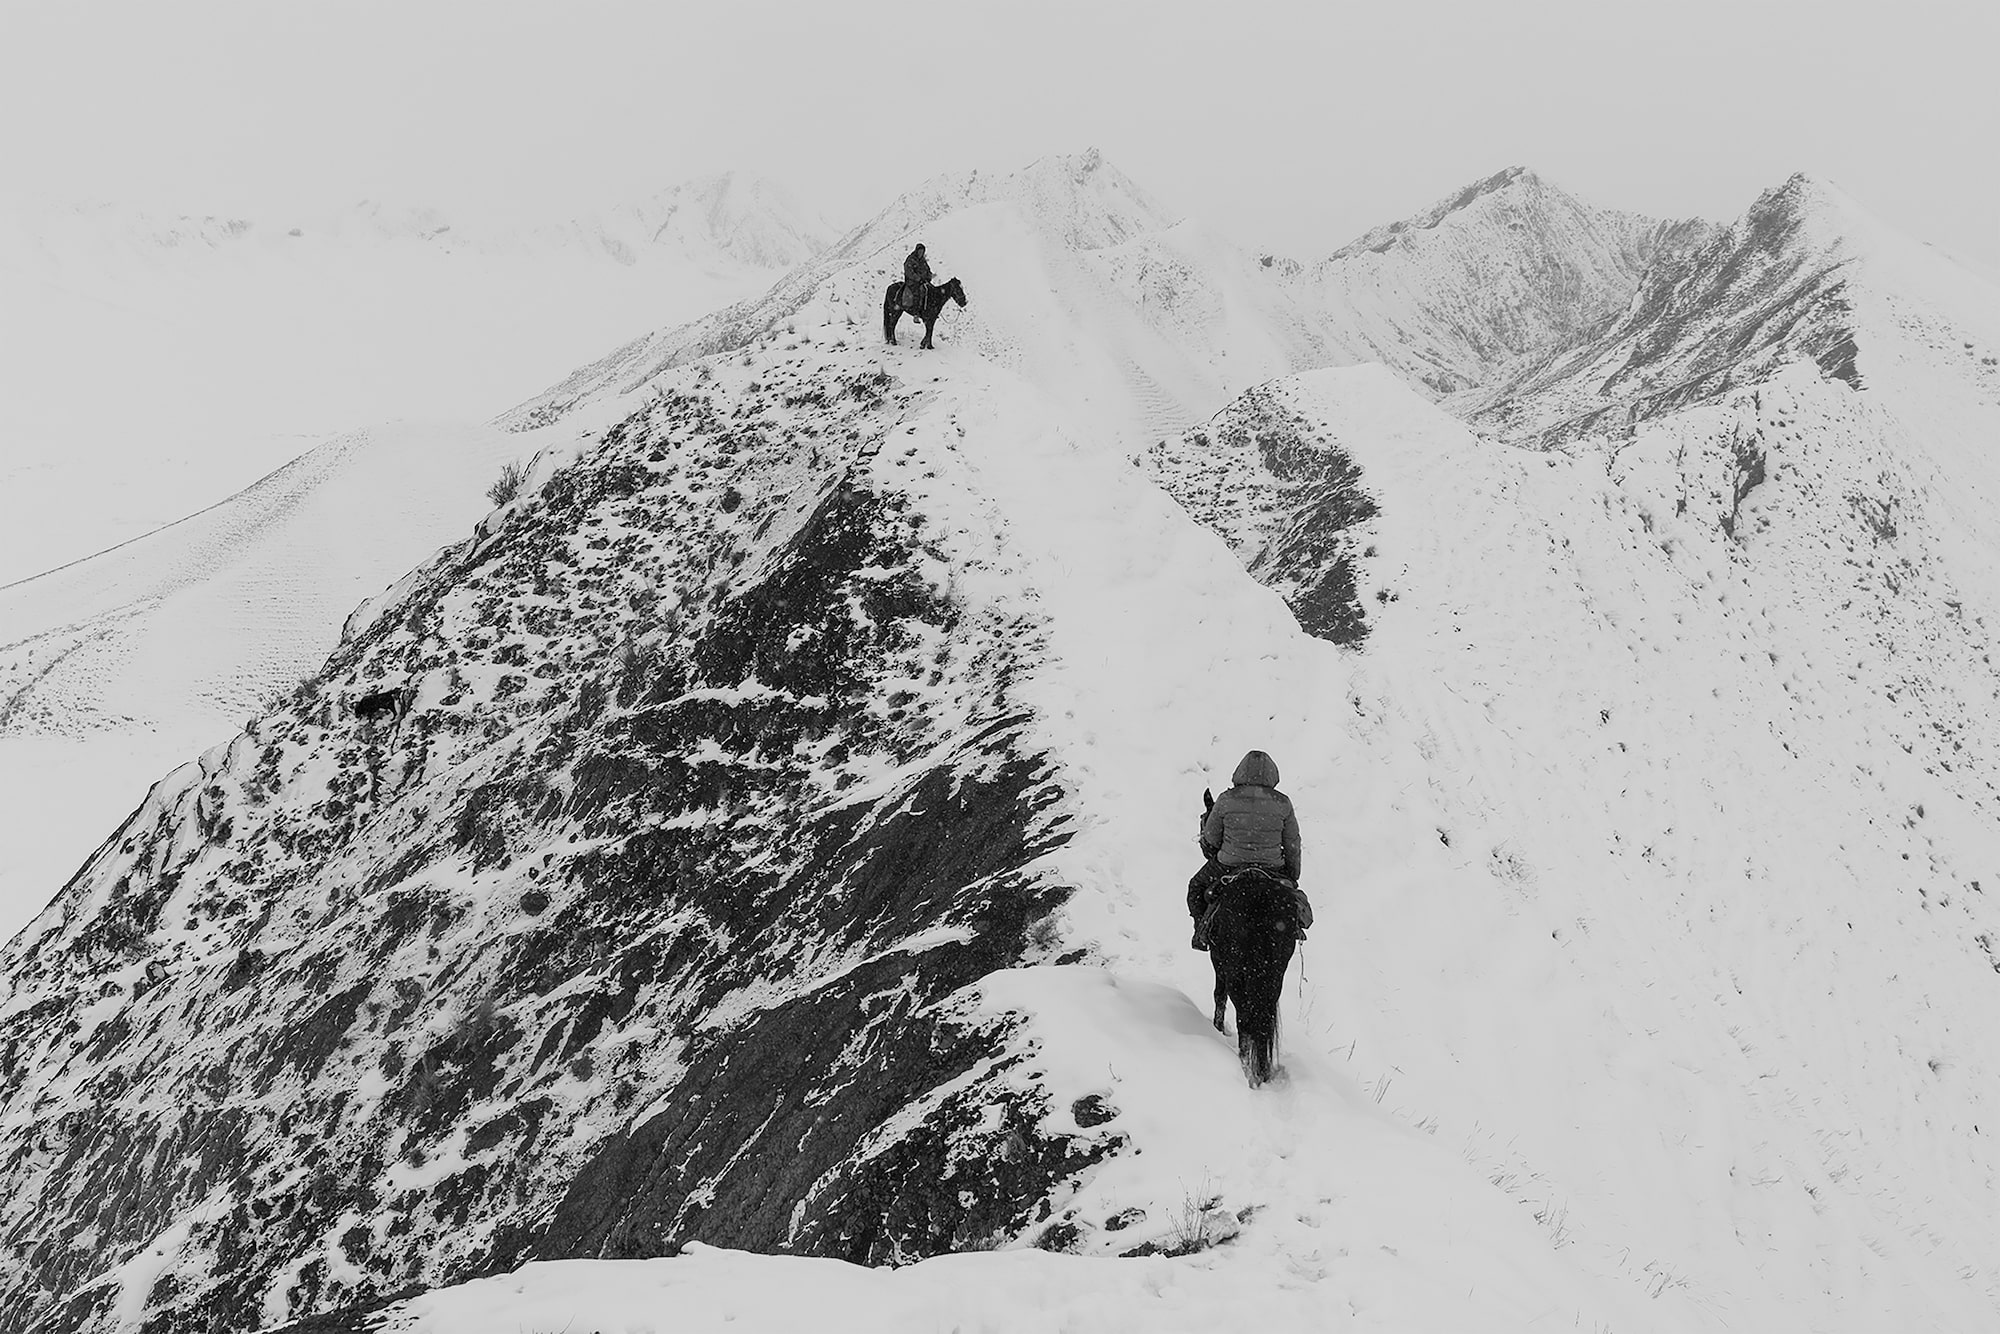 frederik buyckx sony alpha 7RM3 horseback shepherd makes his way up a mountain pass towards another shepherd